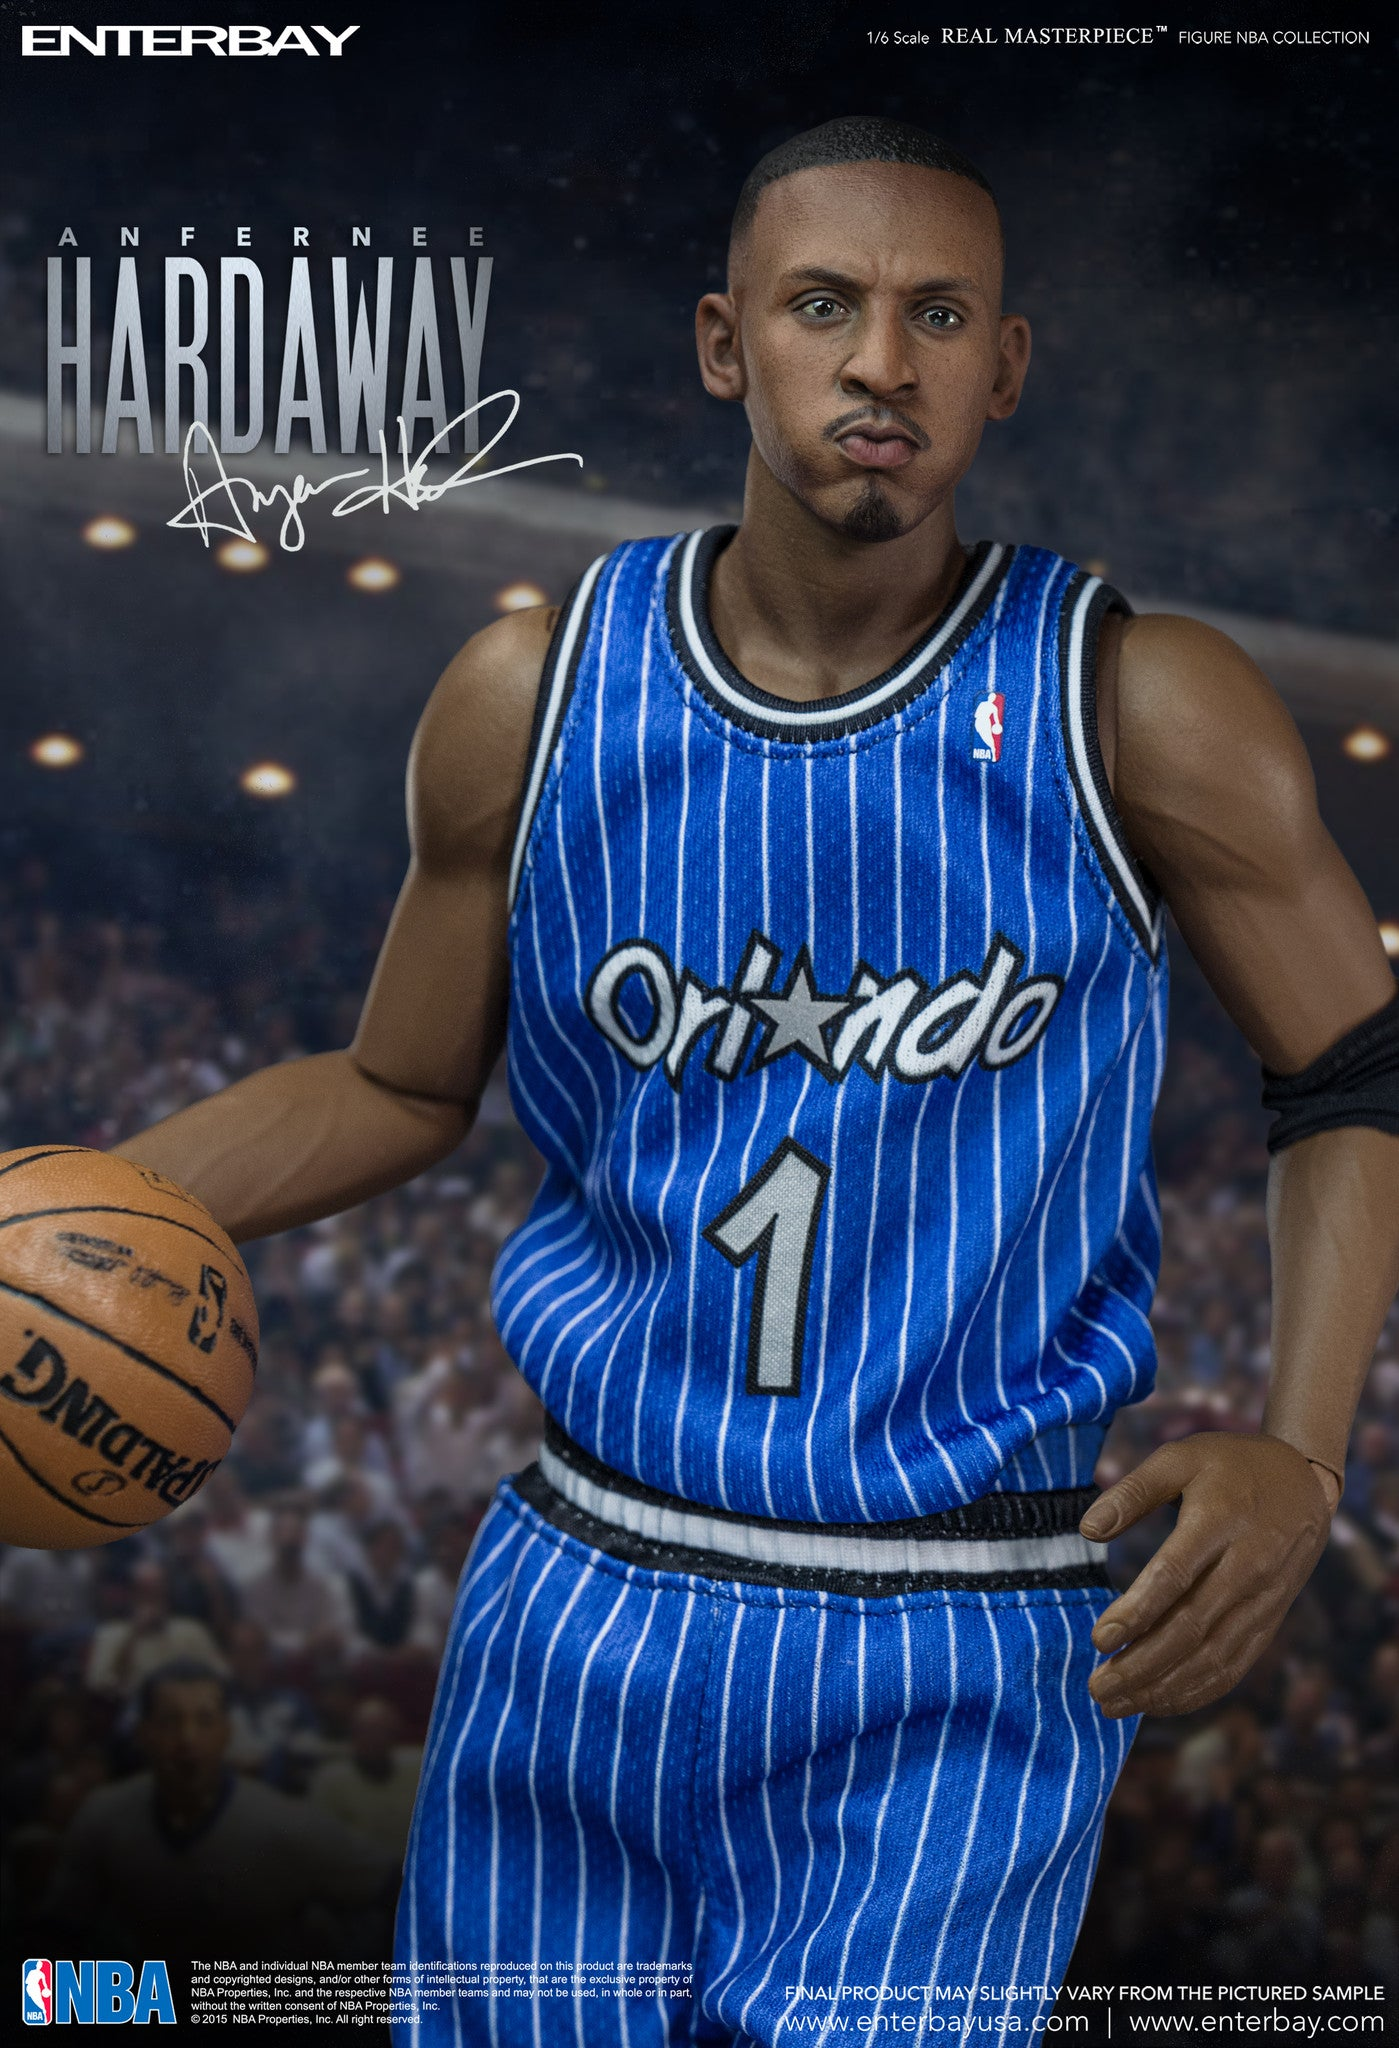 """RM 1068 Real Masterpiece NBA Collection – Anfernee """"Penny"""